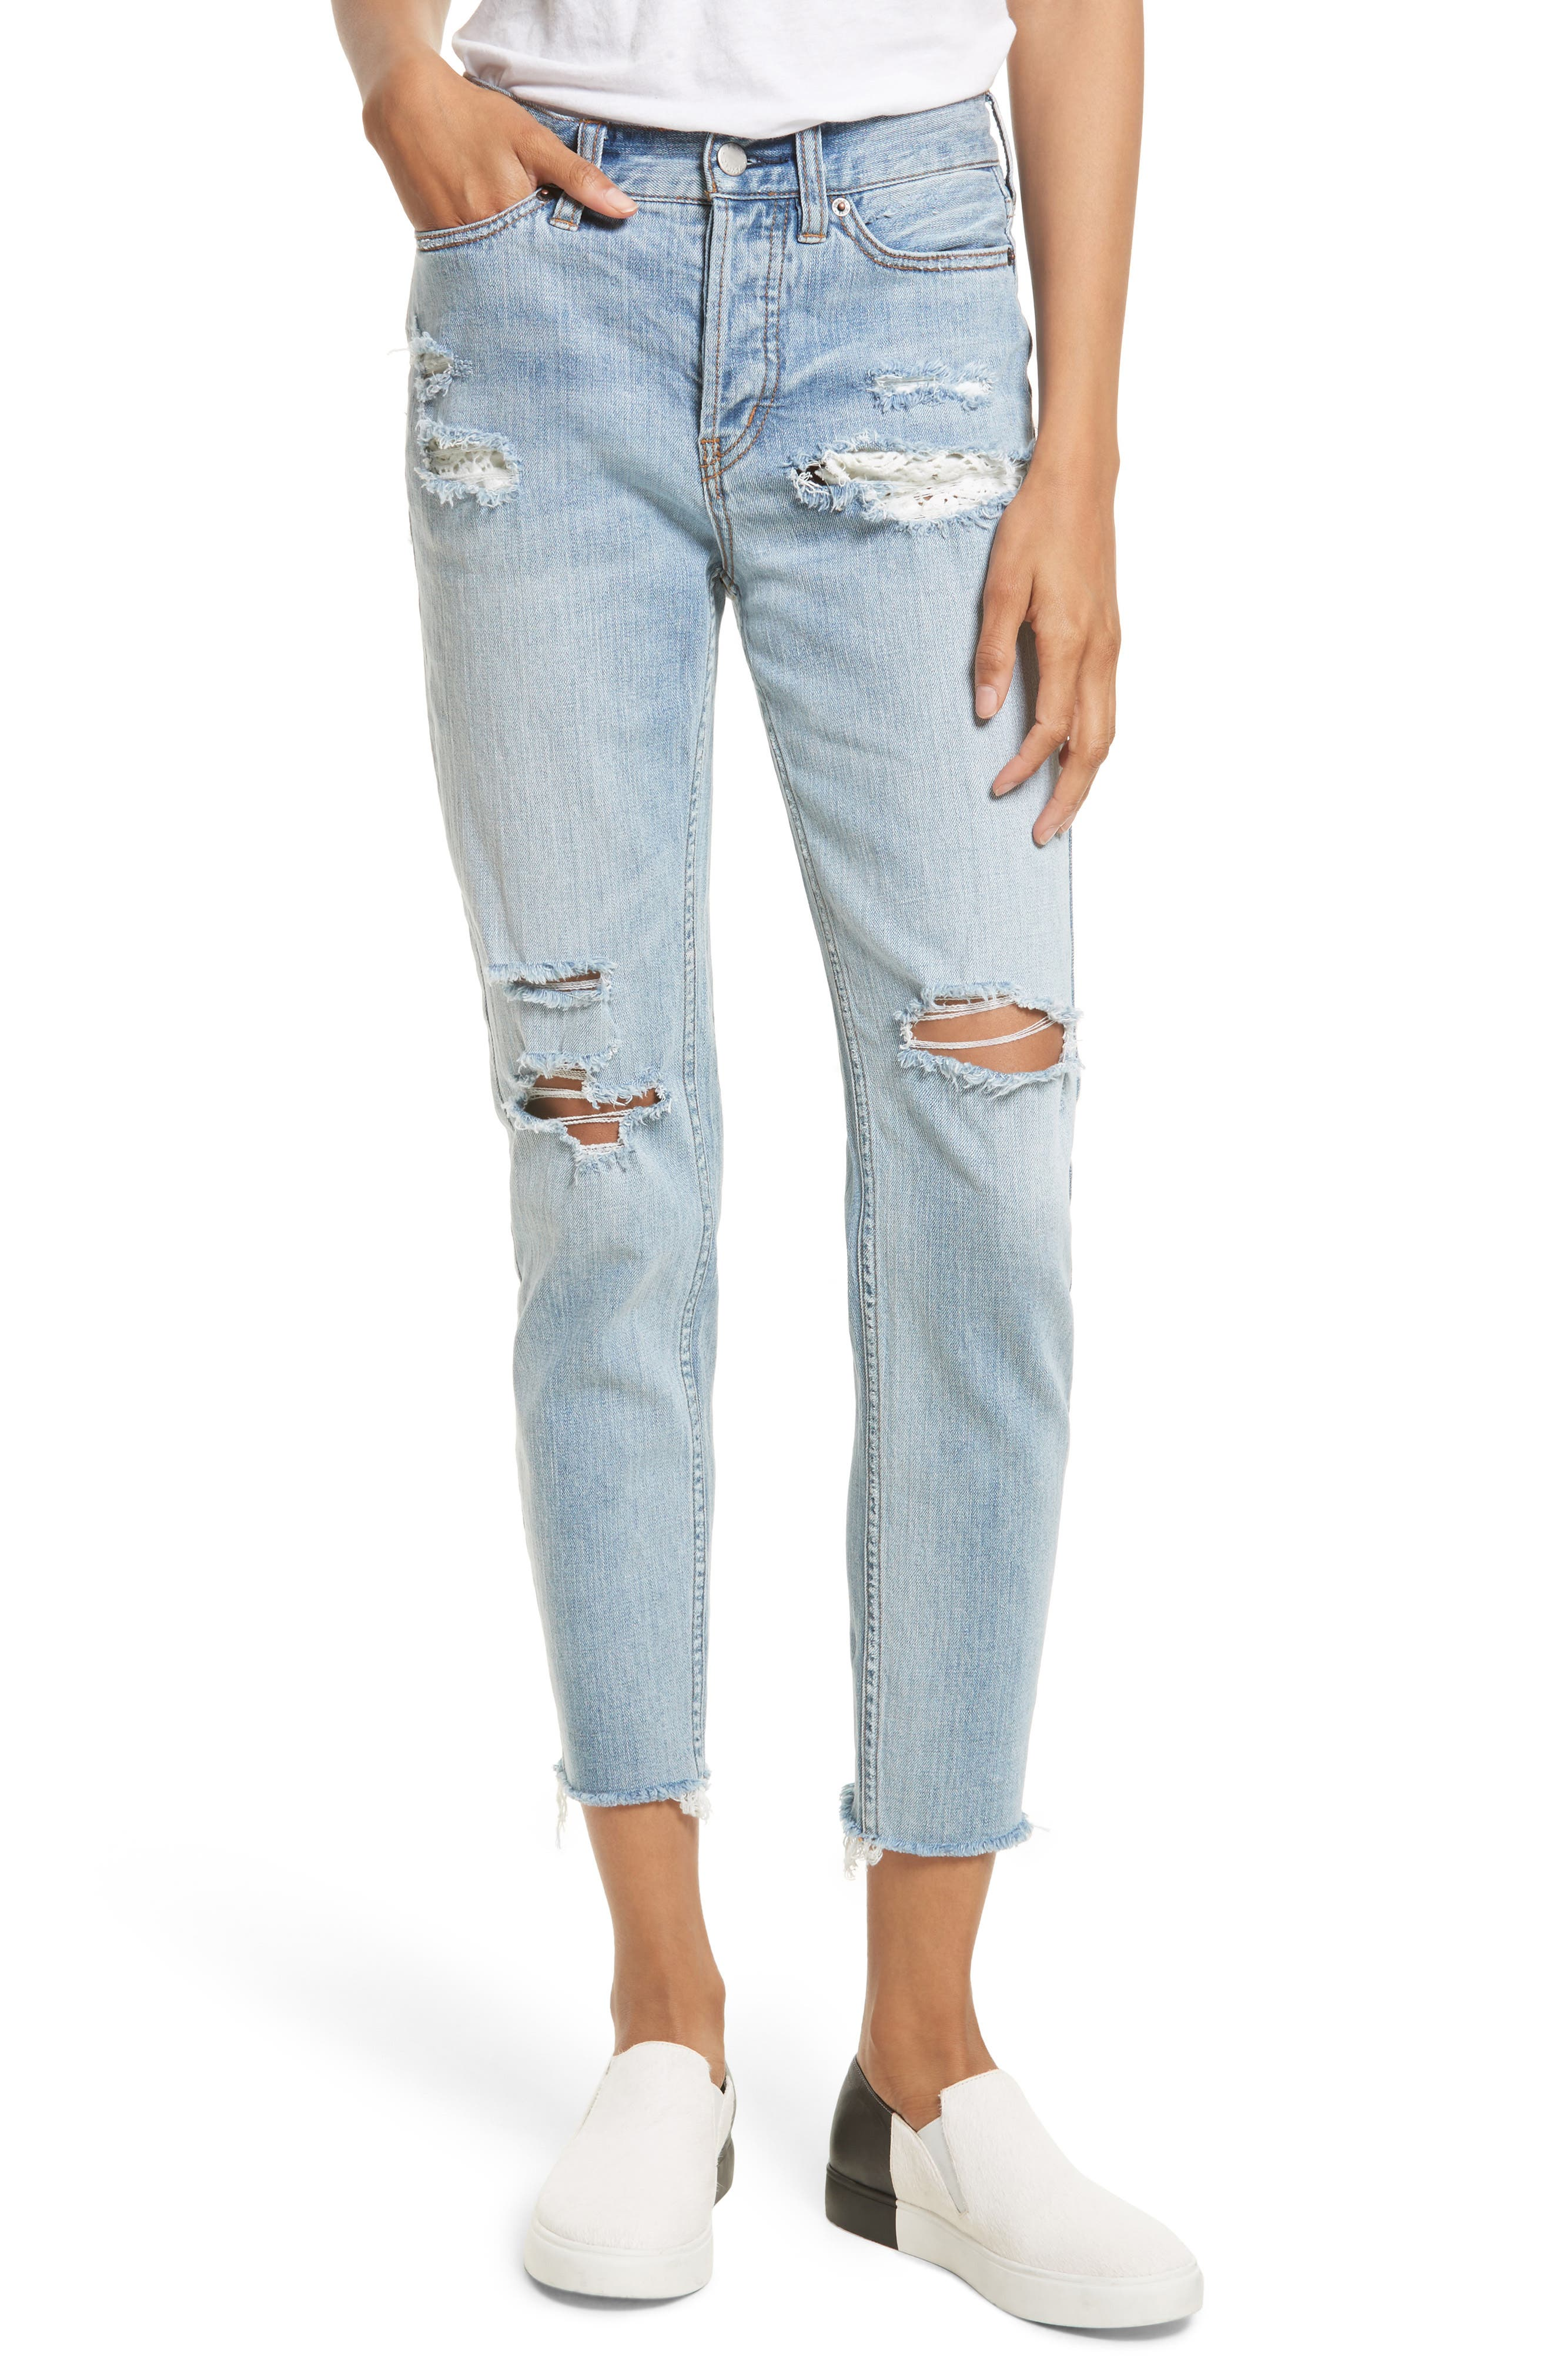 Free People Lacey Stilt Embroidered Crop Jeans